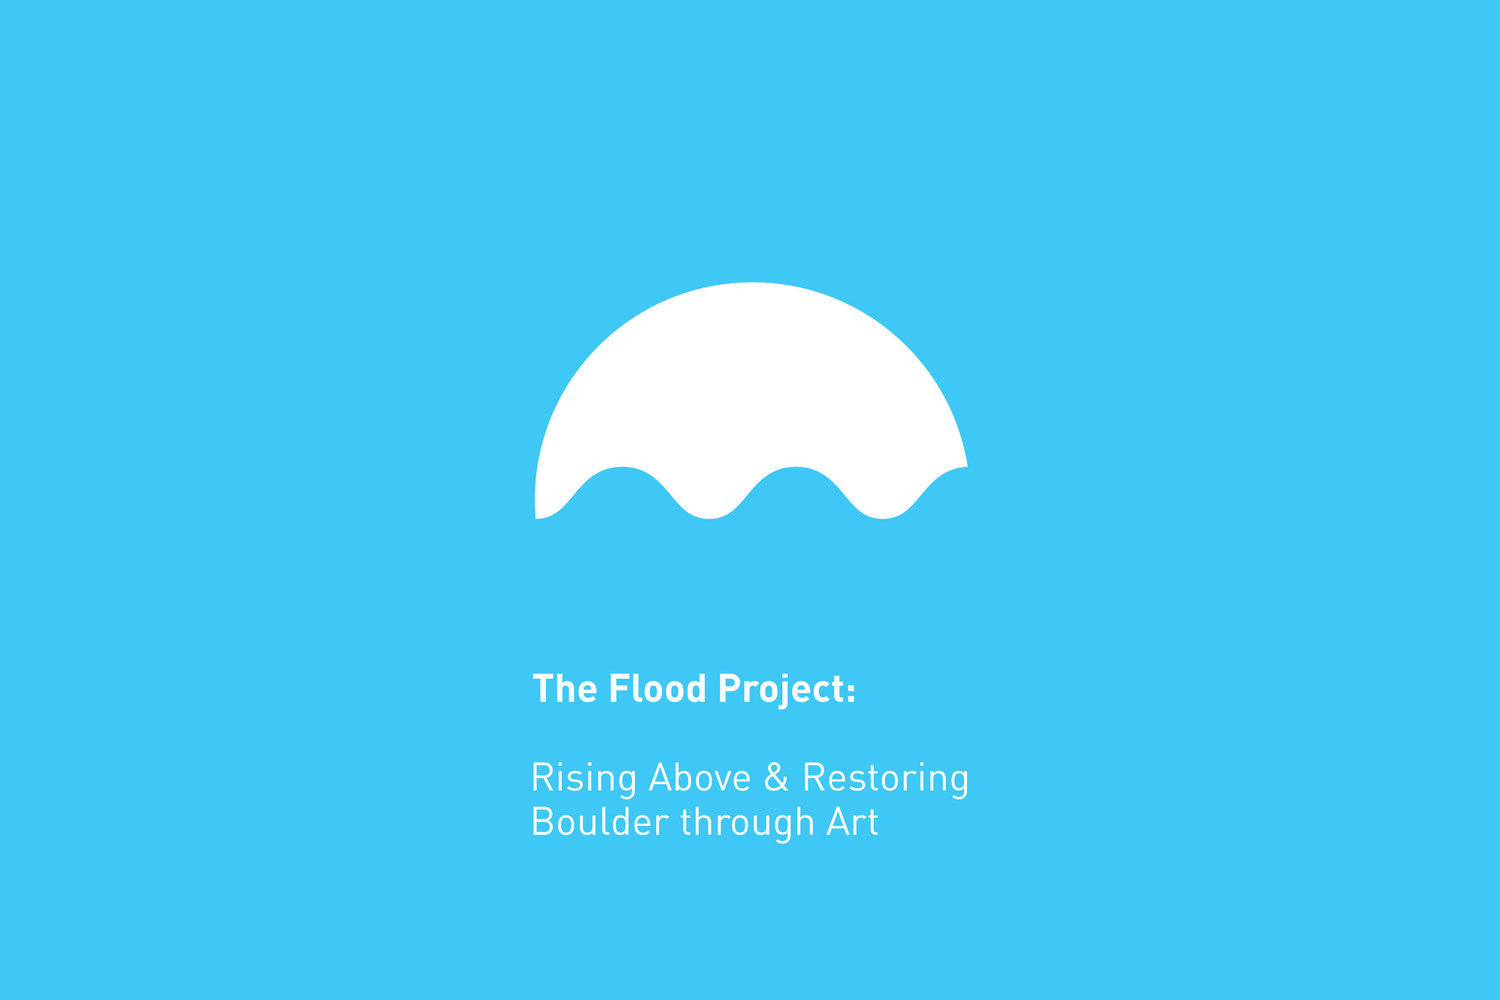 The.Flood.Project.8.5x5.5.Front.jpg